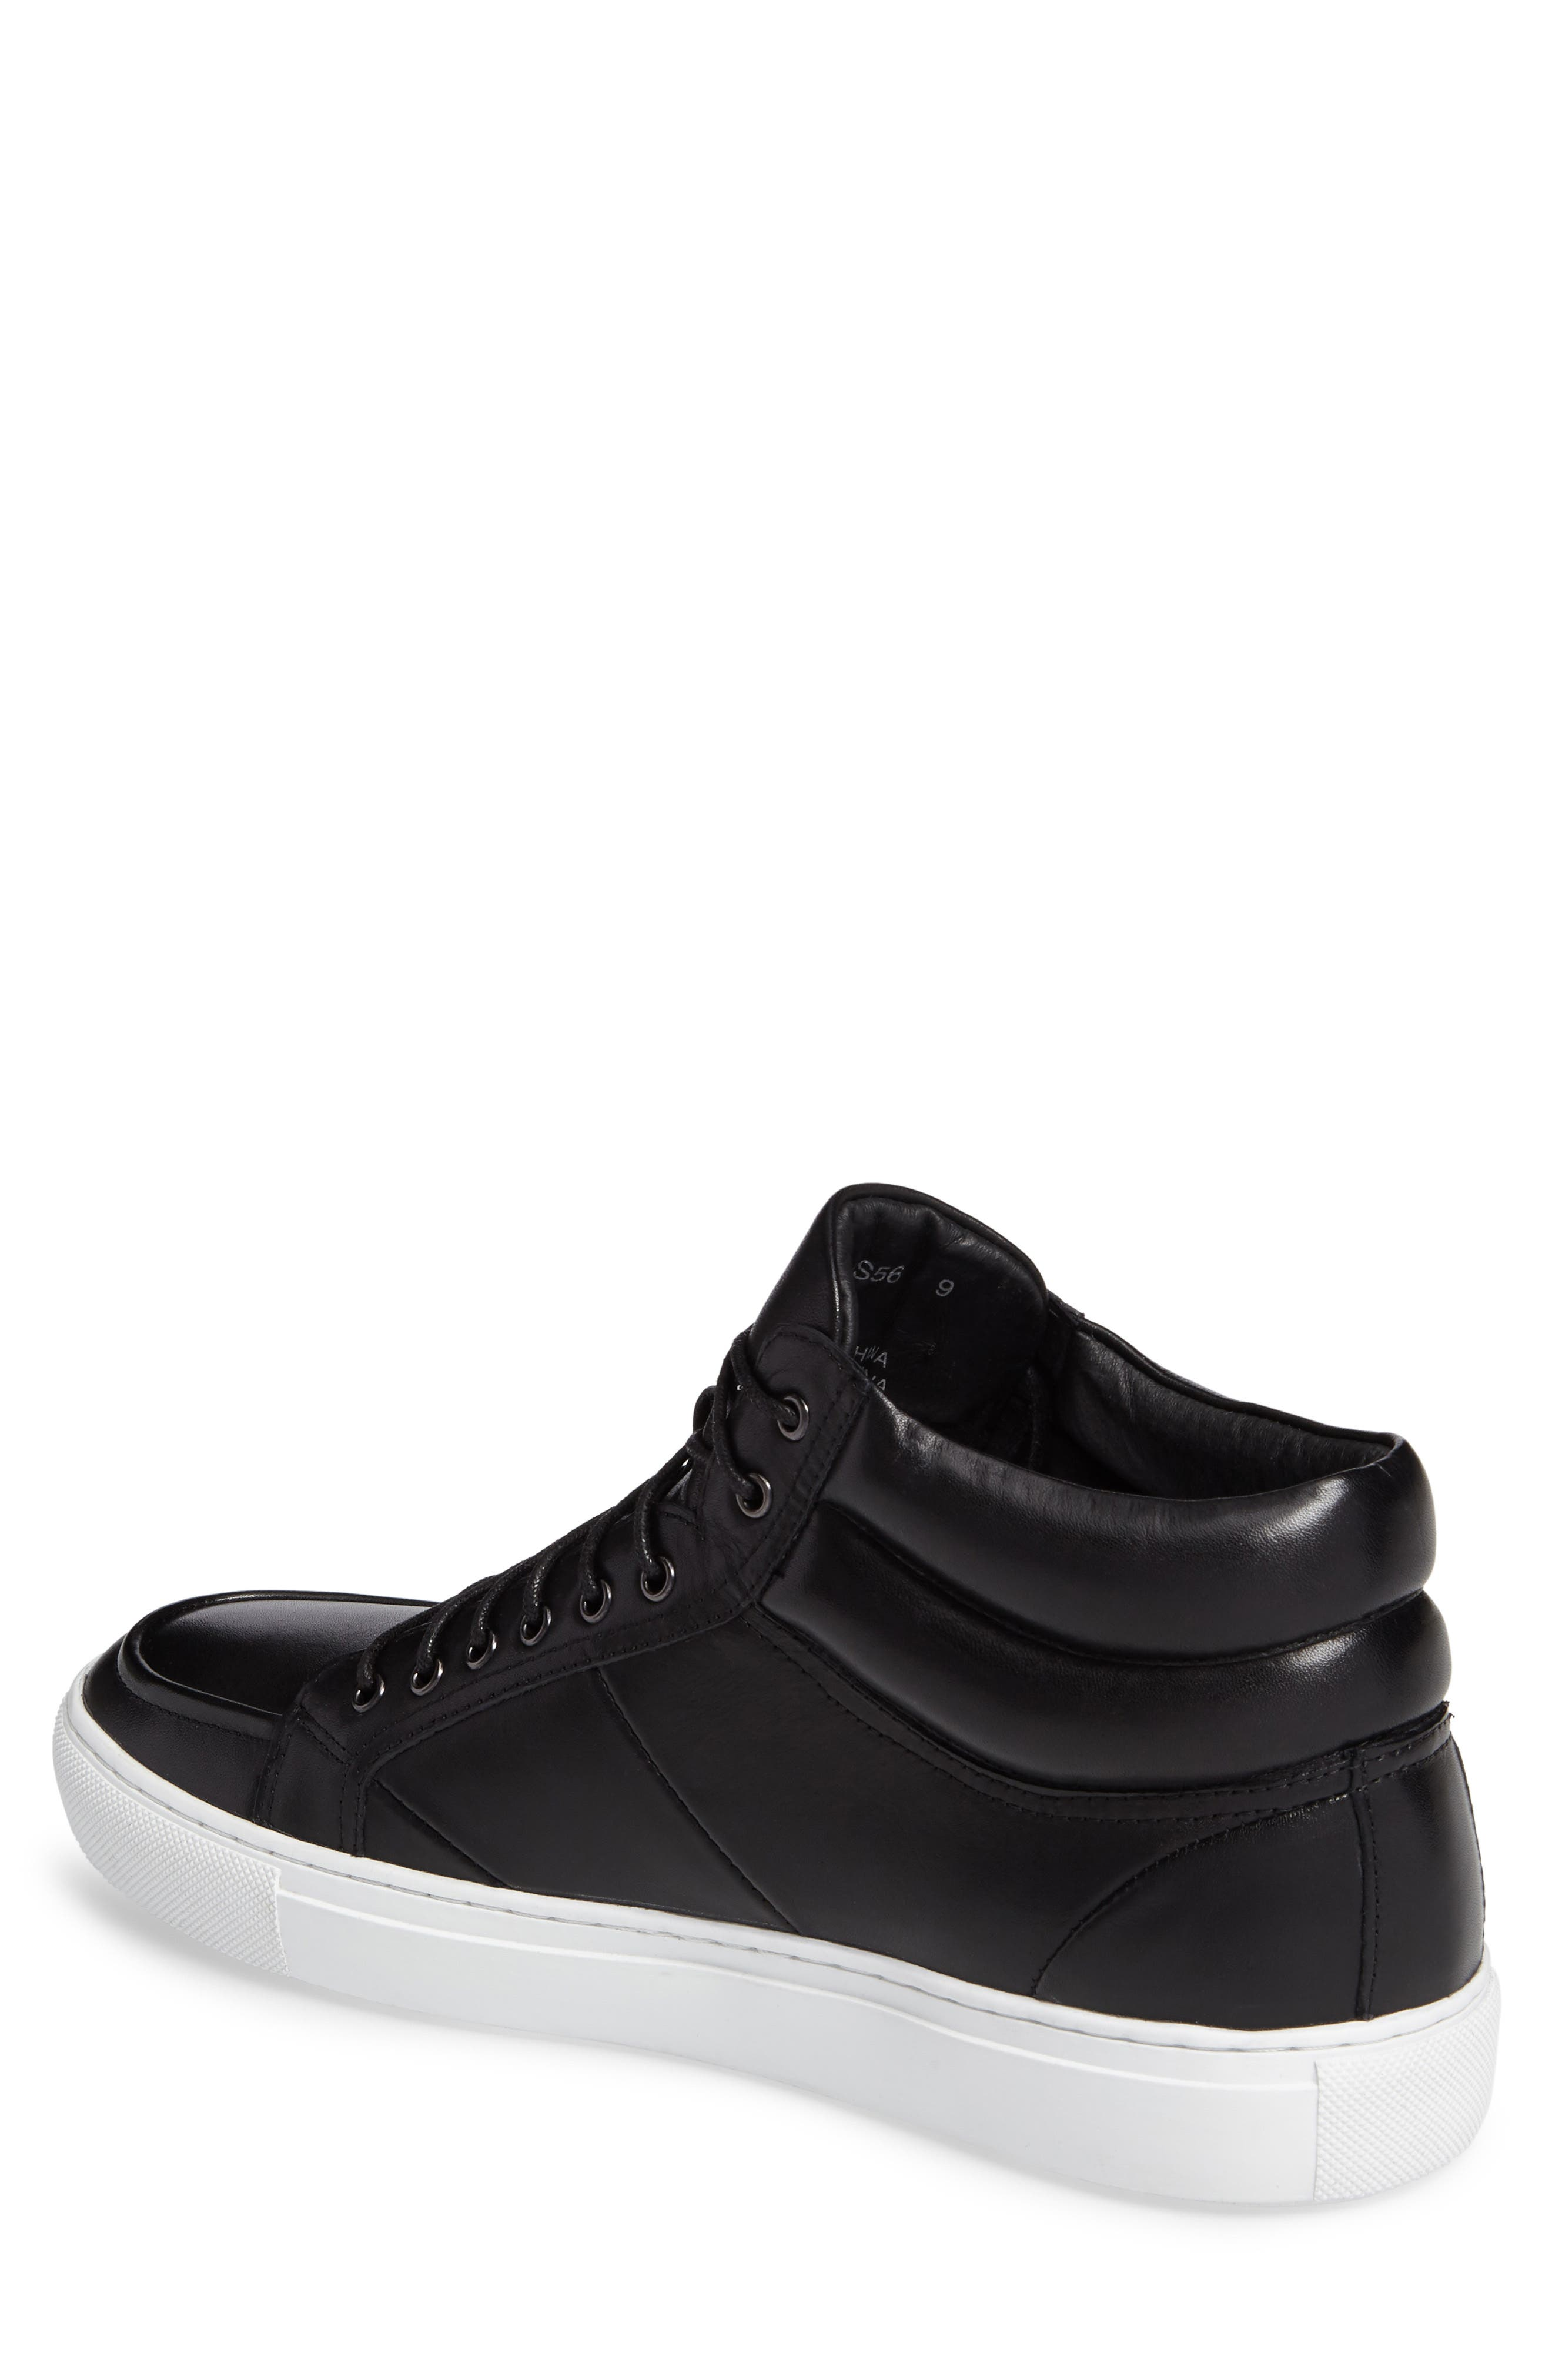 Alternate Image 2  - Zanzara Clef Sneaker (Men)